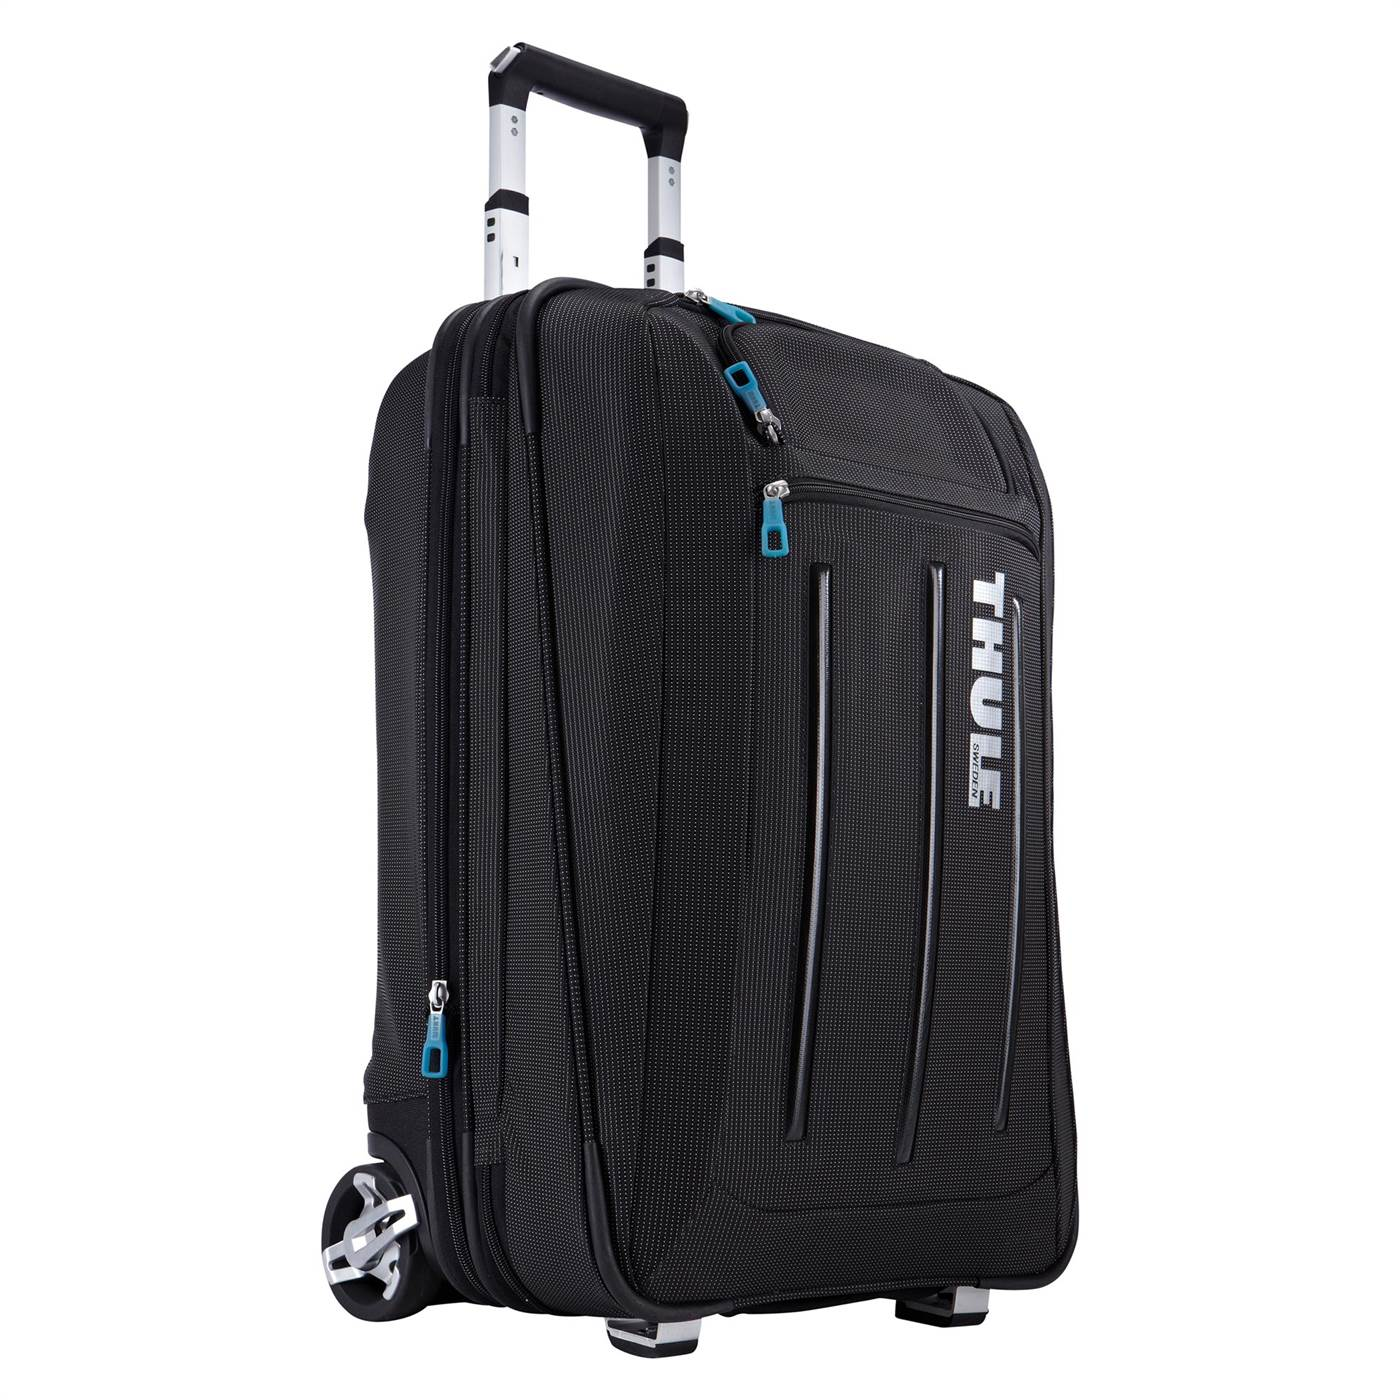 Crossover Luggage Upright 22